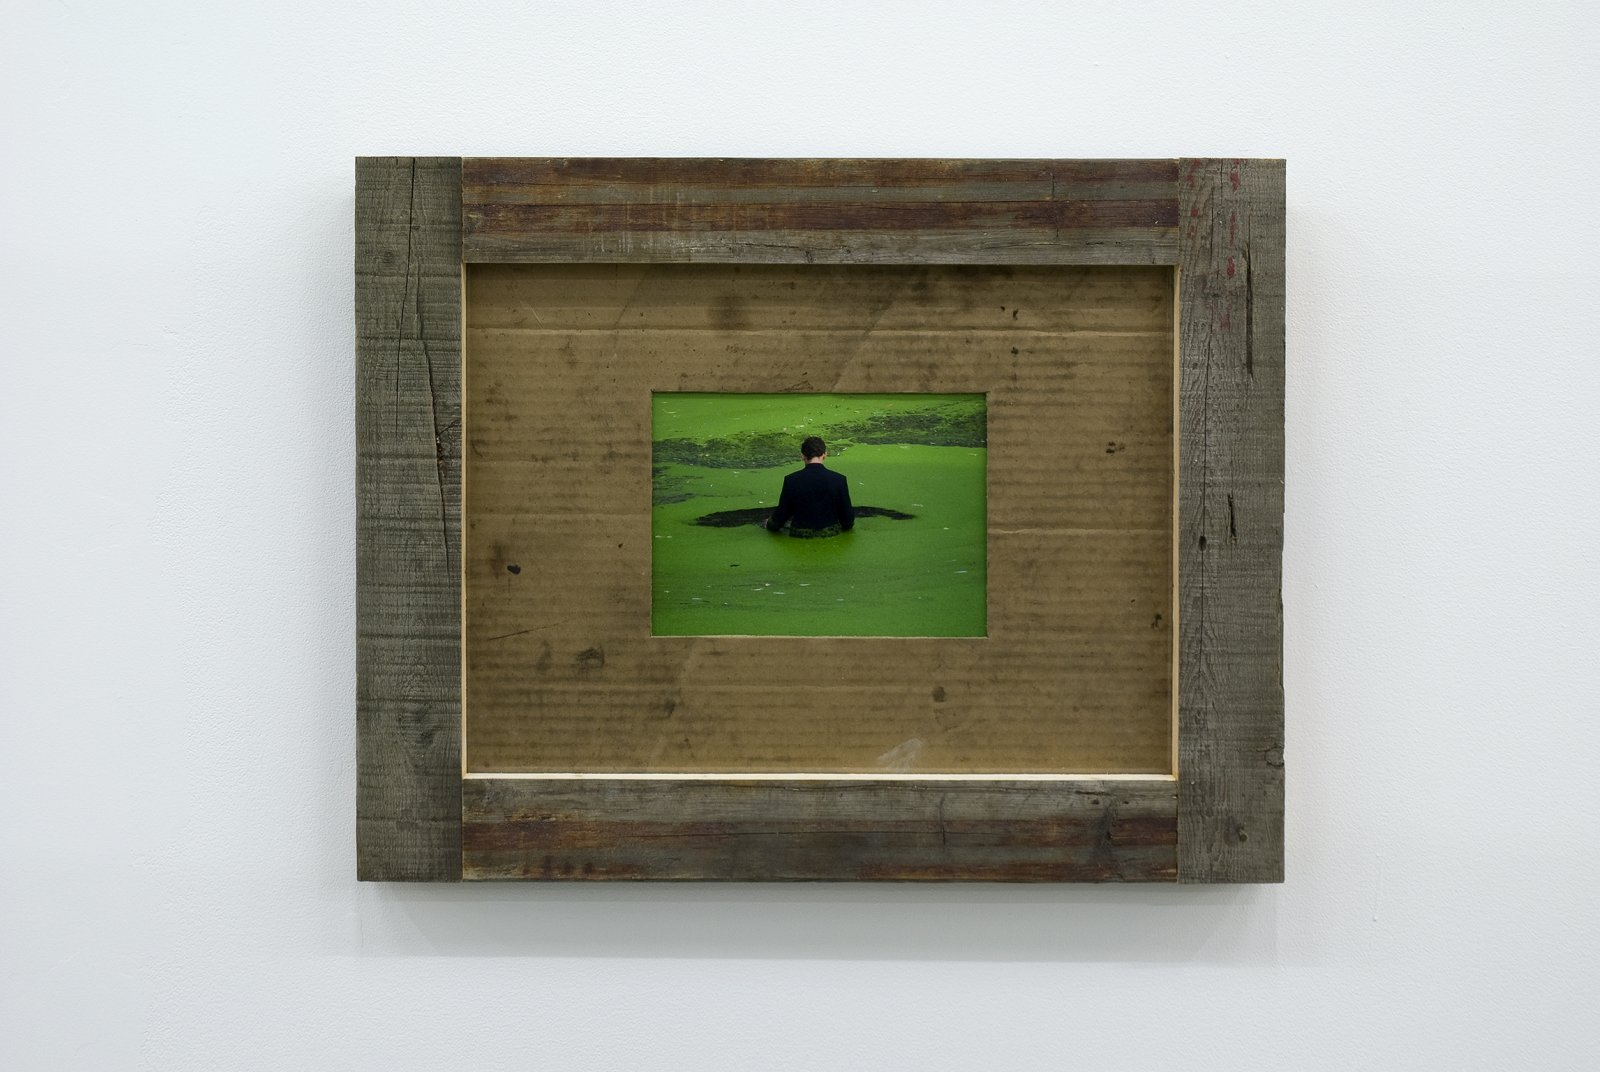 Gareth Moore, Untitled from Uncertain Pilgrimage, 2006-2009, lightjet print, found wood frame, cardboard, 17 x 22 x 2 in. (44 x 55 x 4 cm) by Ashes Withyman